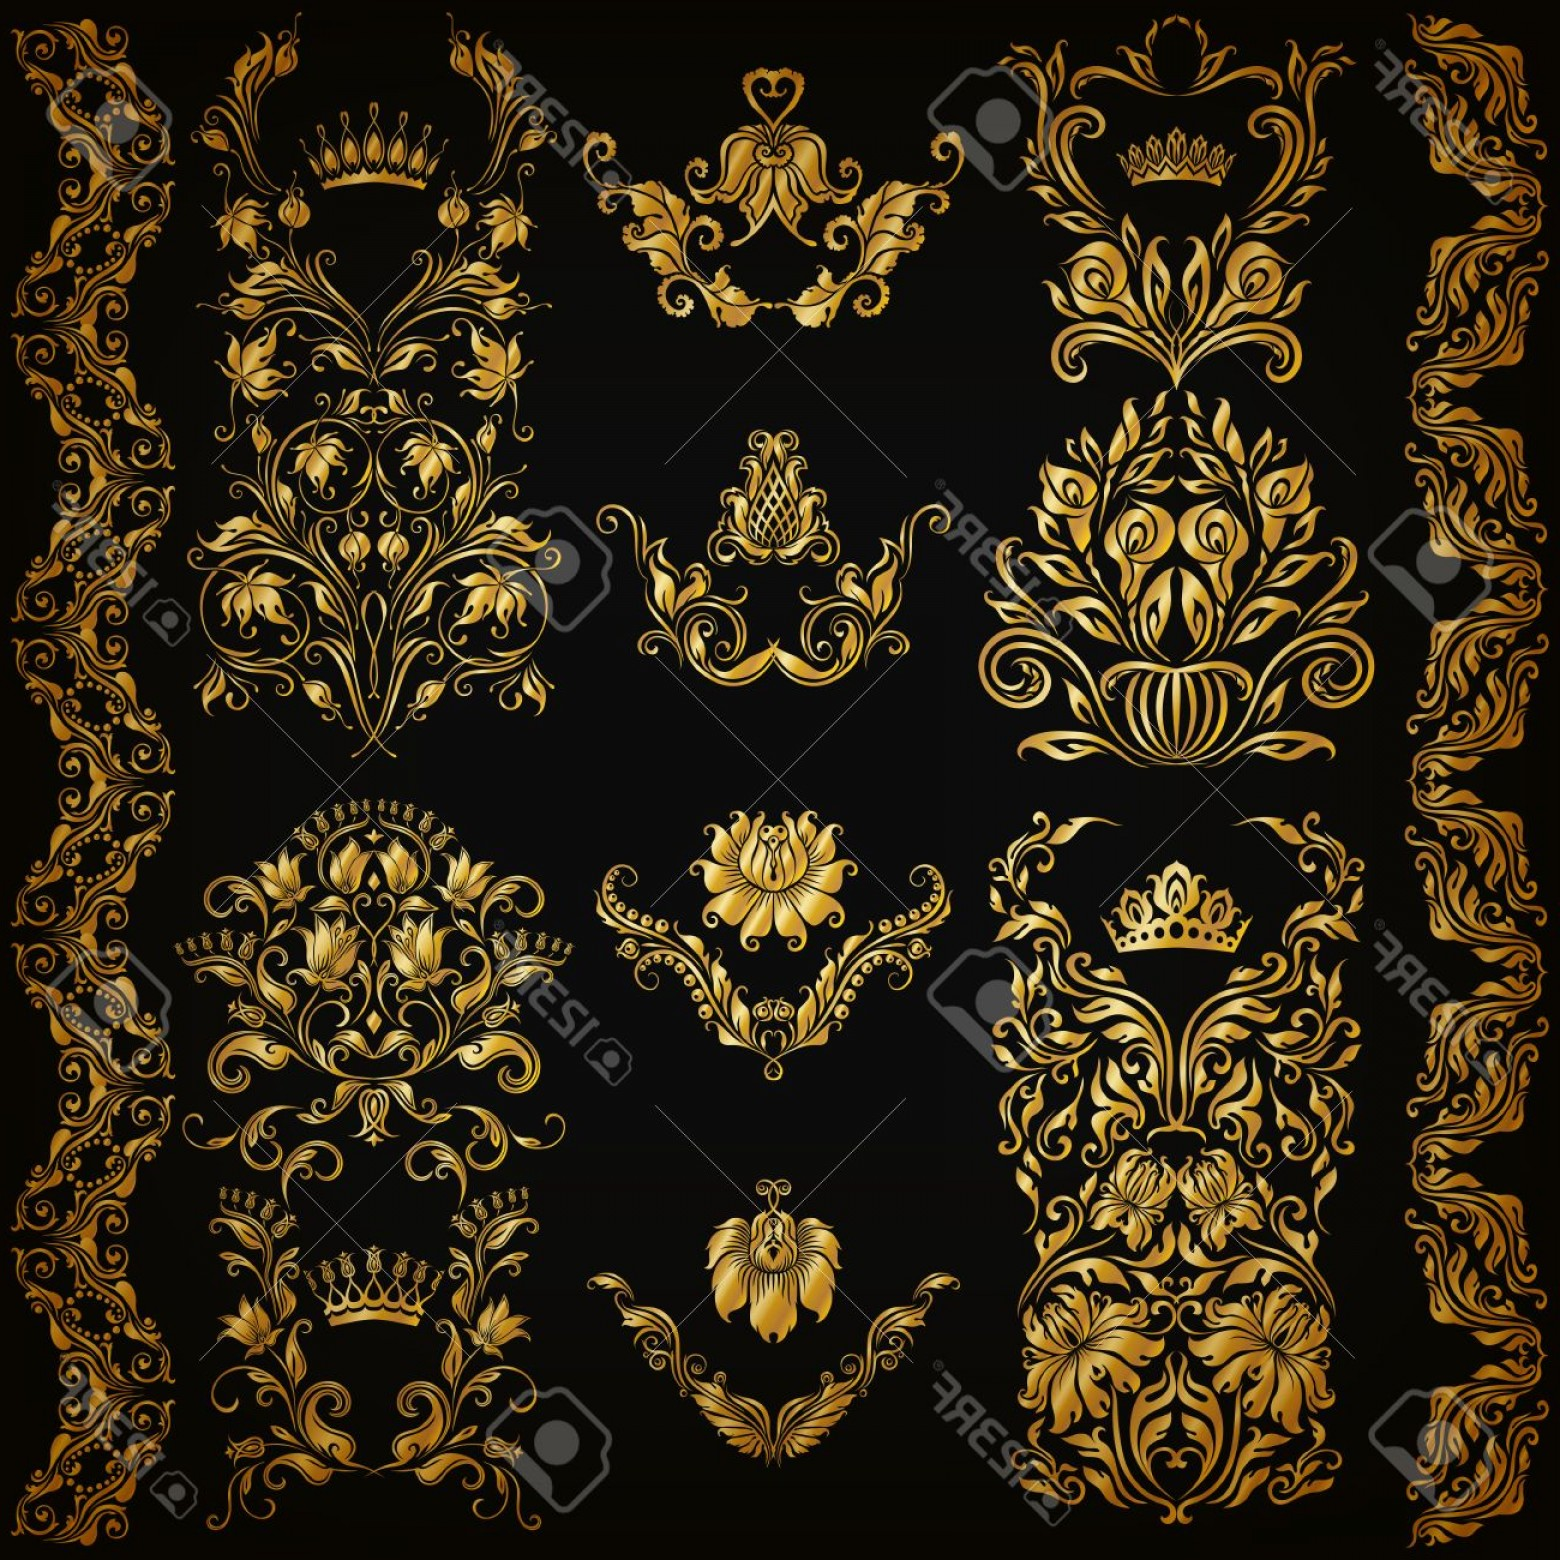 Gold Ornate Borders Vector: Photostock Vector Set Of Gold Damask Ornaments Floral Elements Ornate Borders Filigree Crowns Arabesque For Design Pag